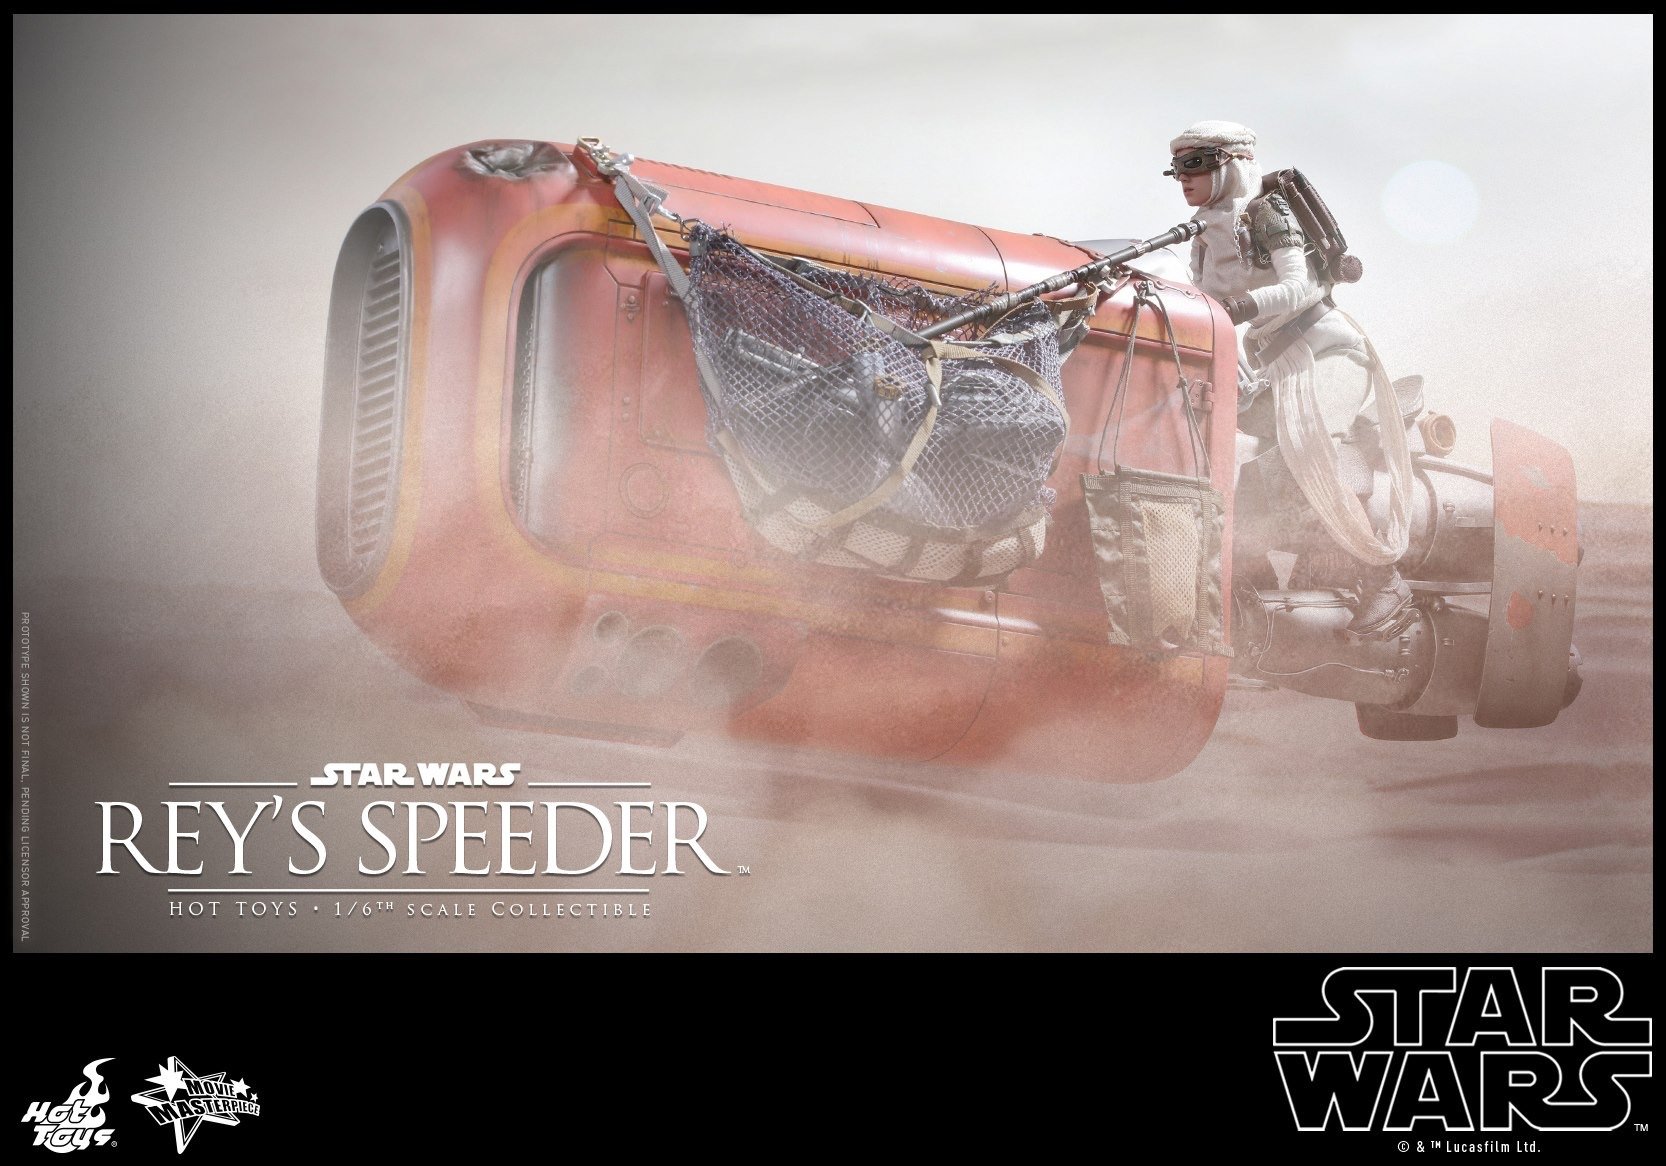 Star Wars: The Force Awakens Rey Speeder Coming To SDCC